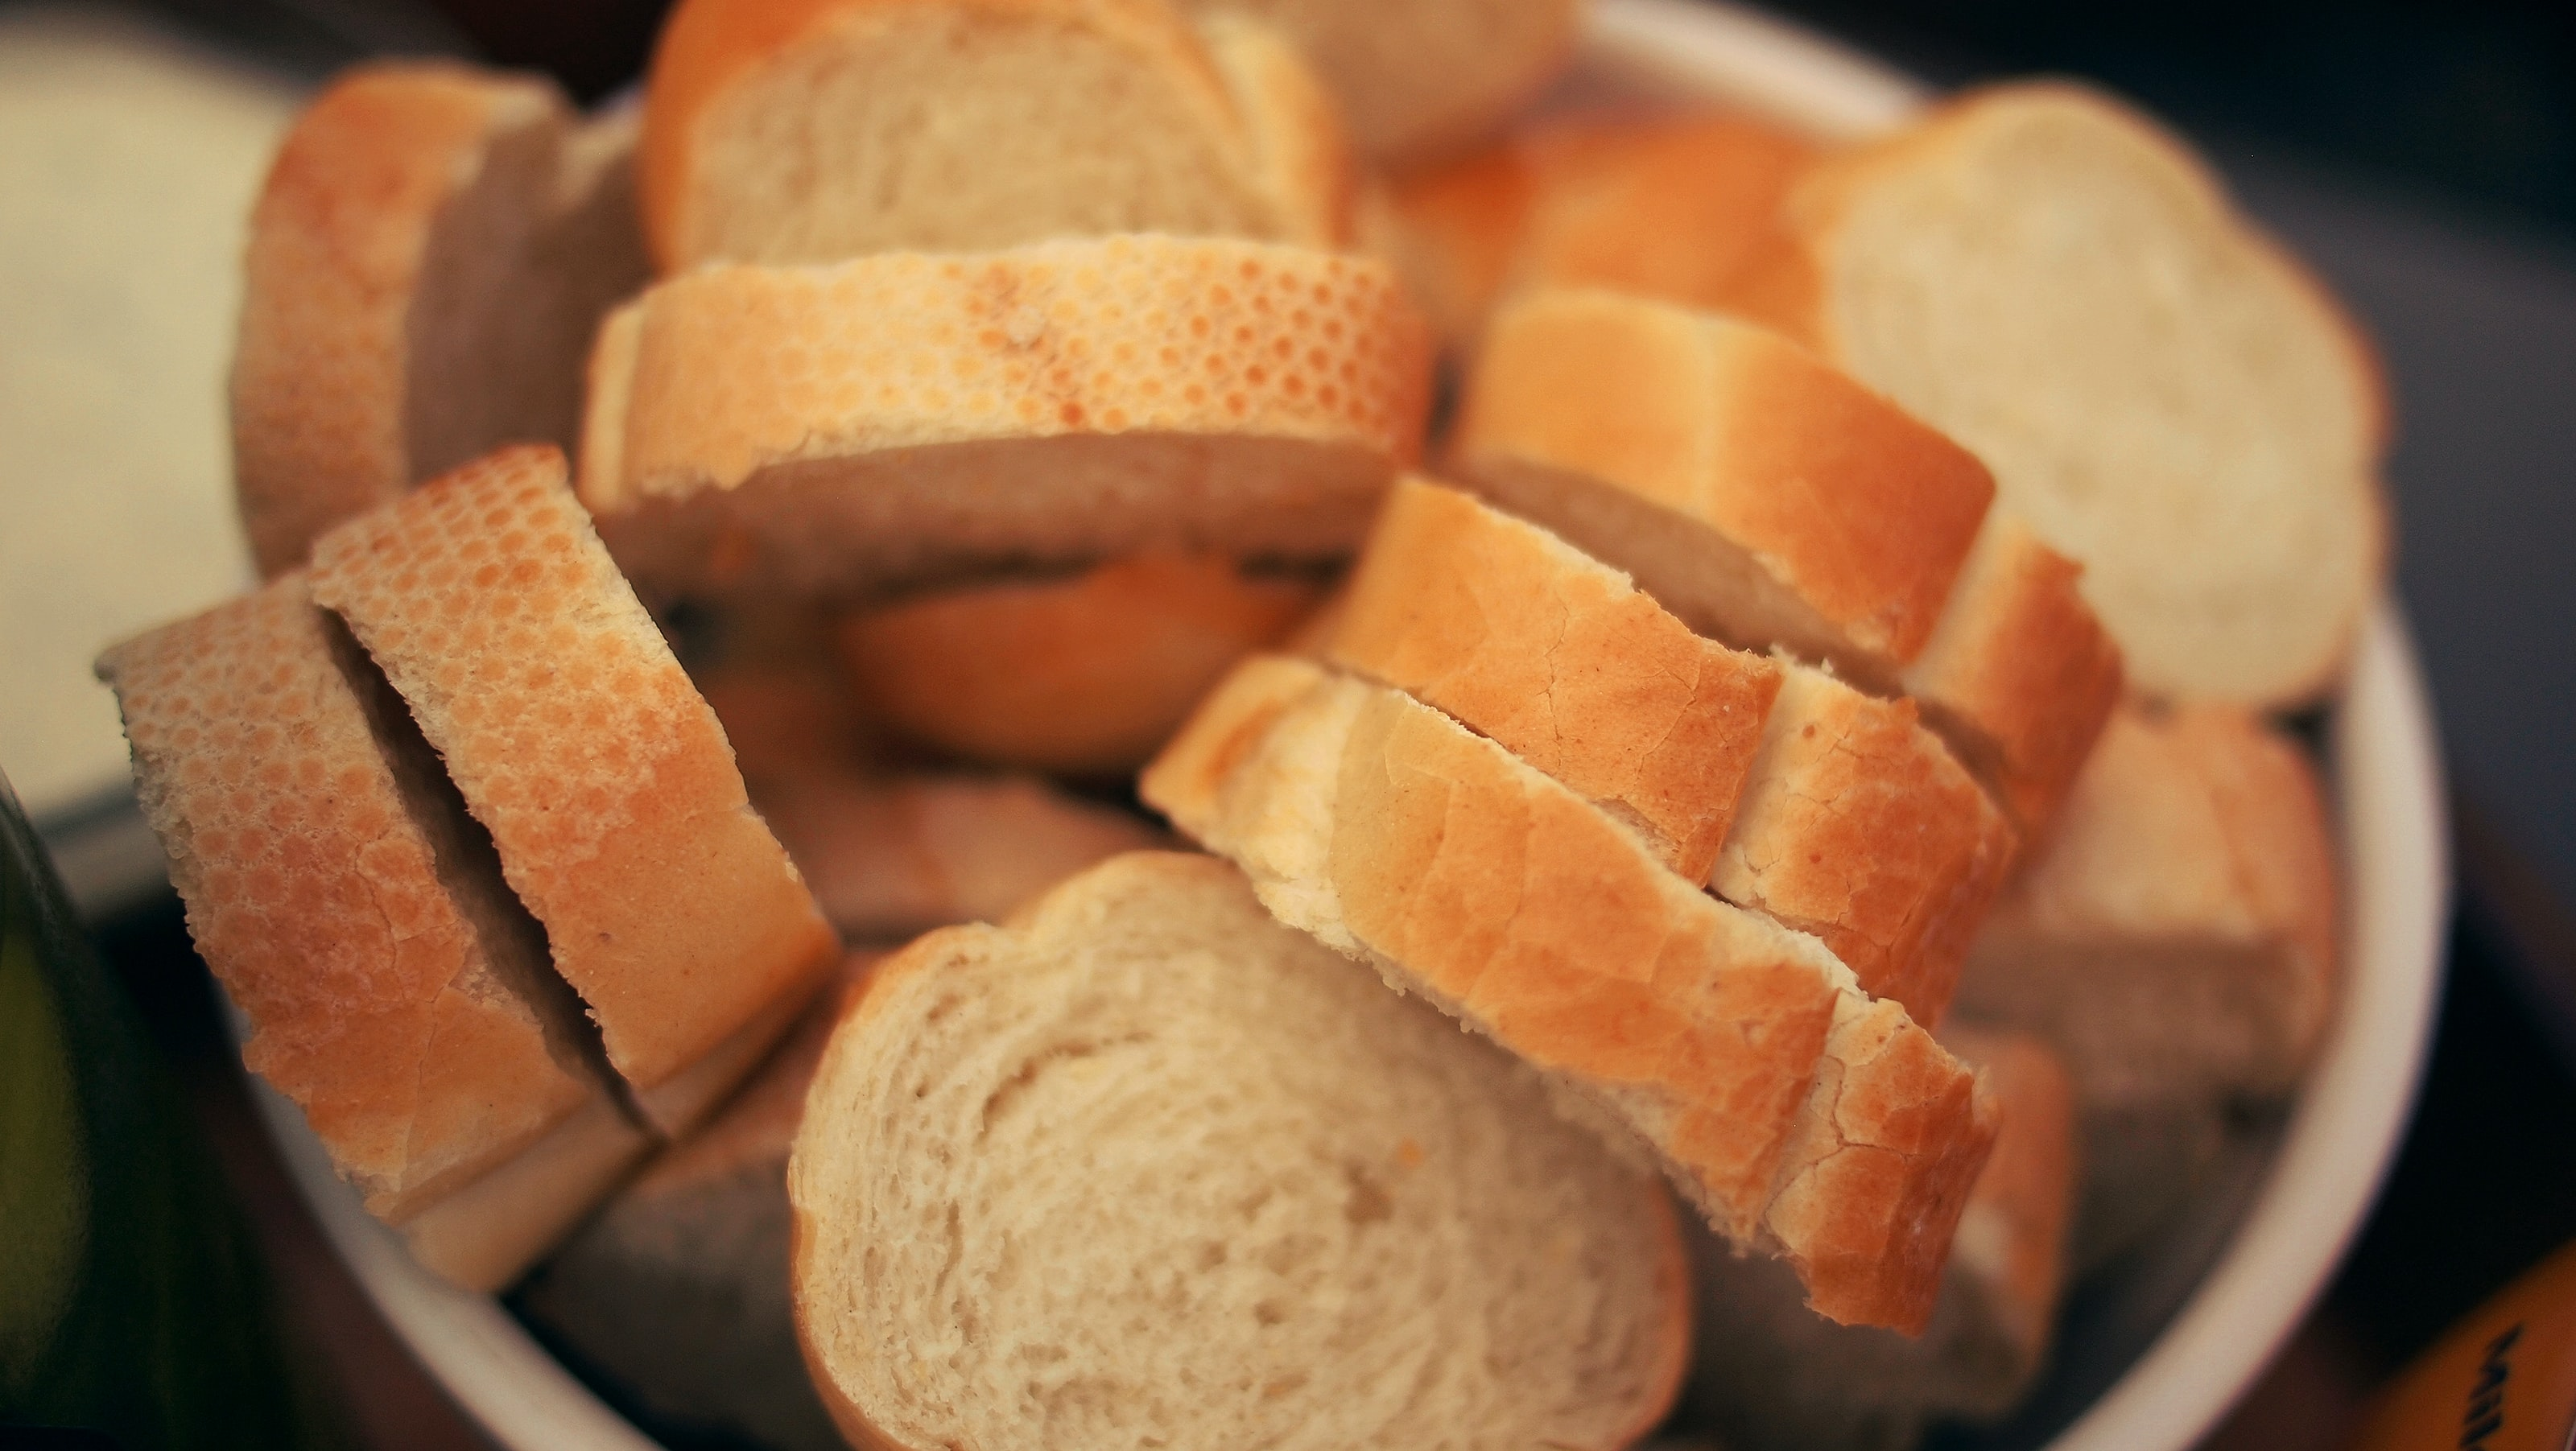 Basket of sliced french bread on the table at a restaurant